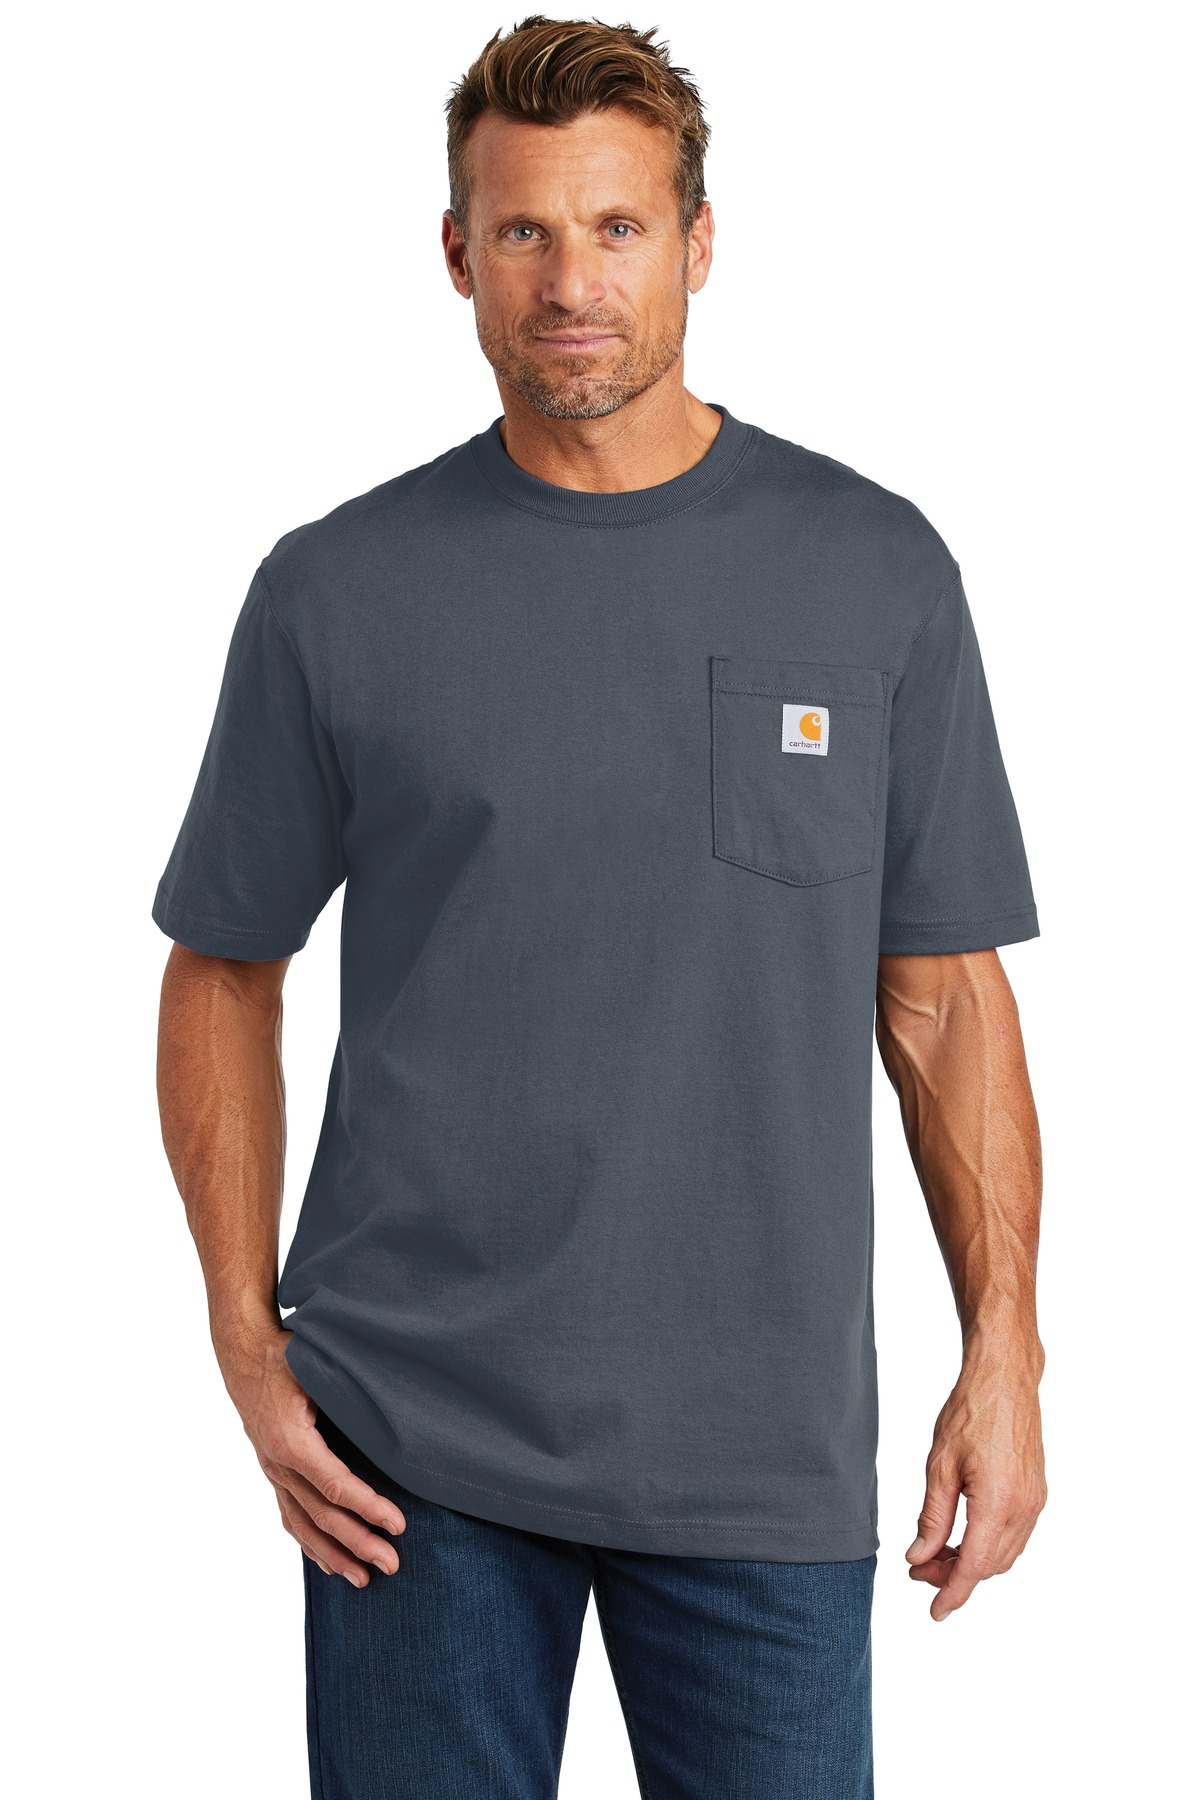 Carhartt  ®  Tall Workwear Pocket Short Sleeve T-Shirt. CTTK87 - Bluestone